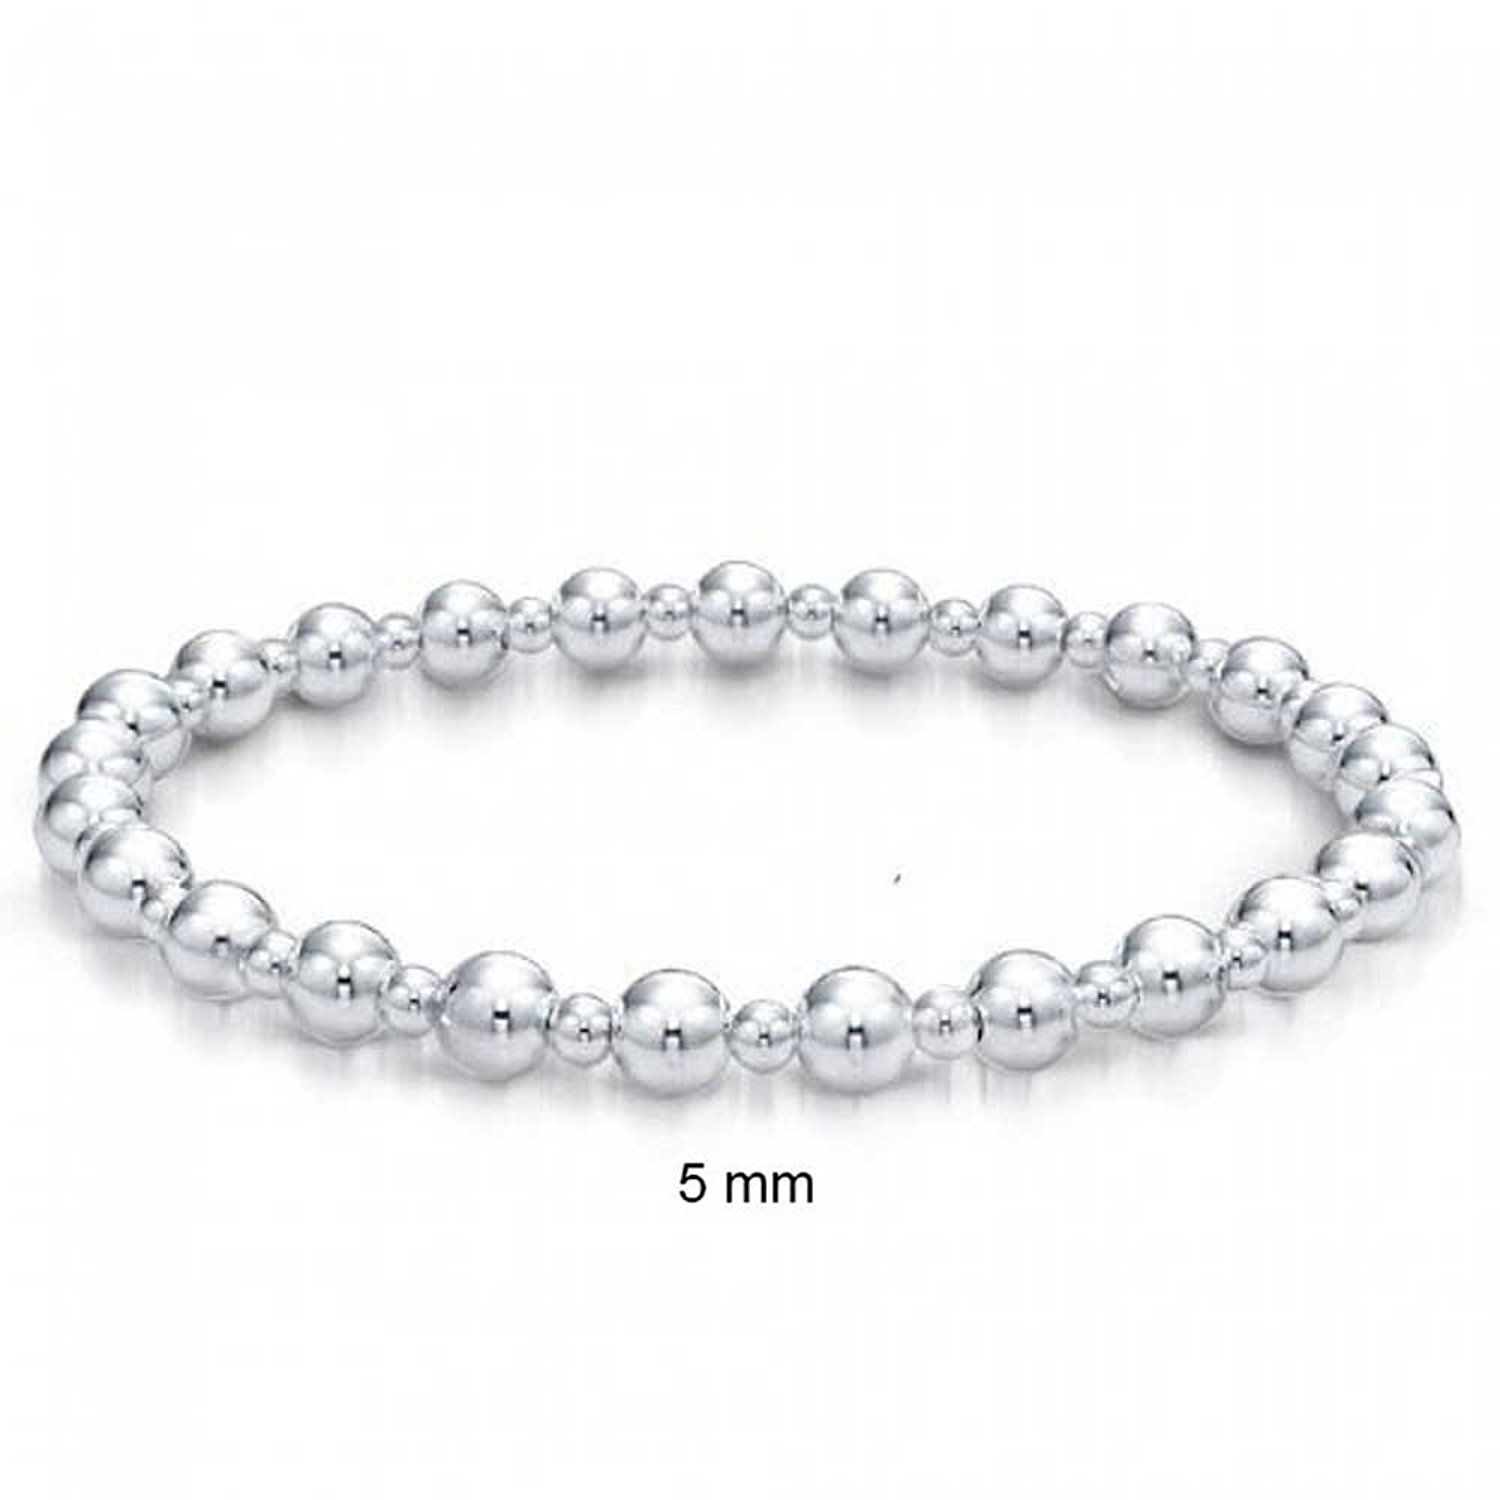 Bling jewelry sterling silver round ball bead bridal stretch